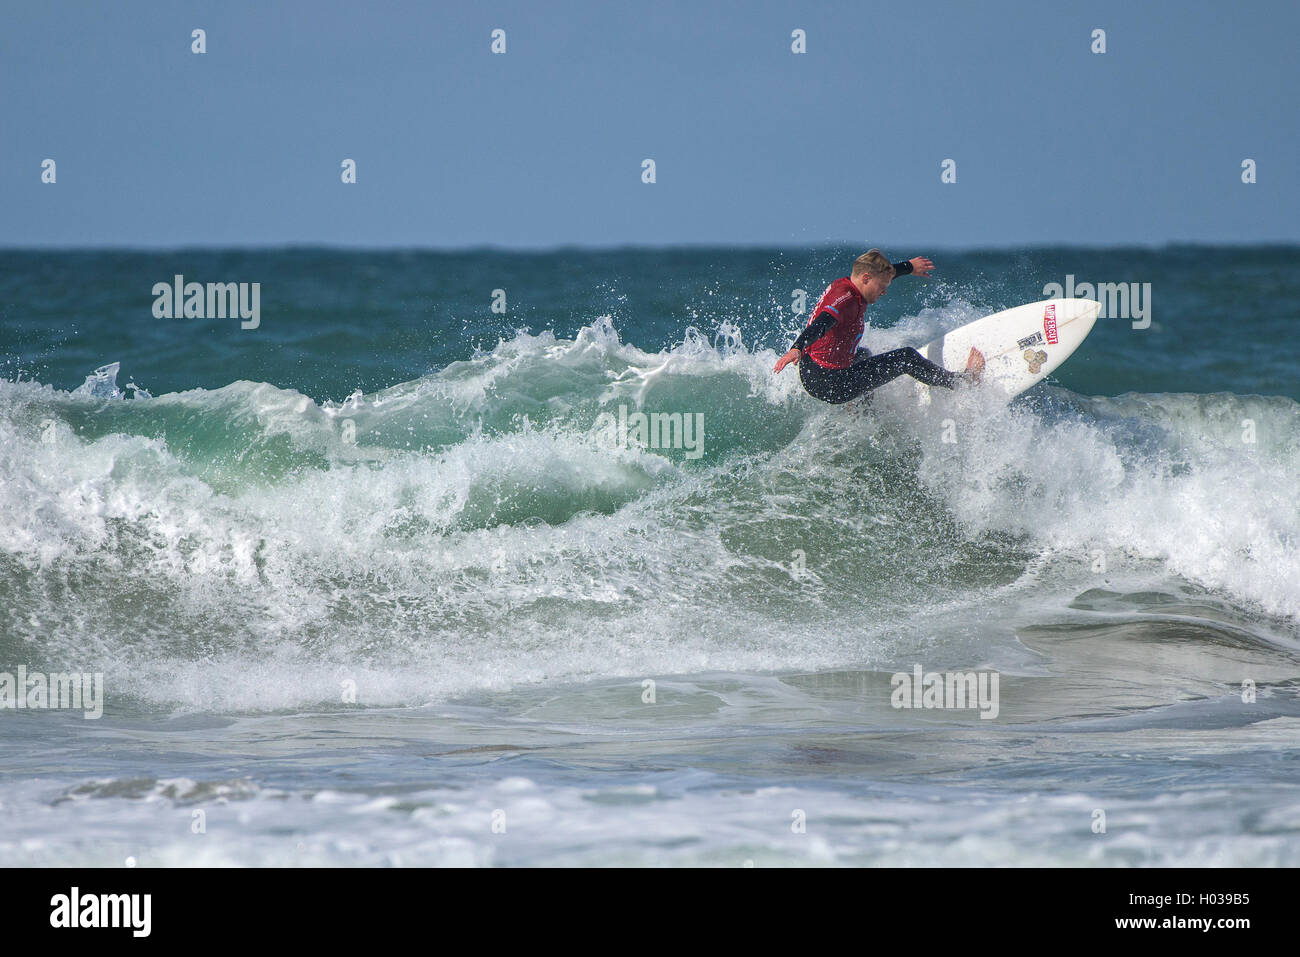 A competitor in spectacular surfing action at the Surfing GB Inter-Clubs Surfing Competition at Fistral in Newquay, - Stock Image